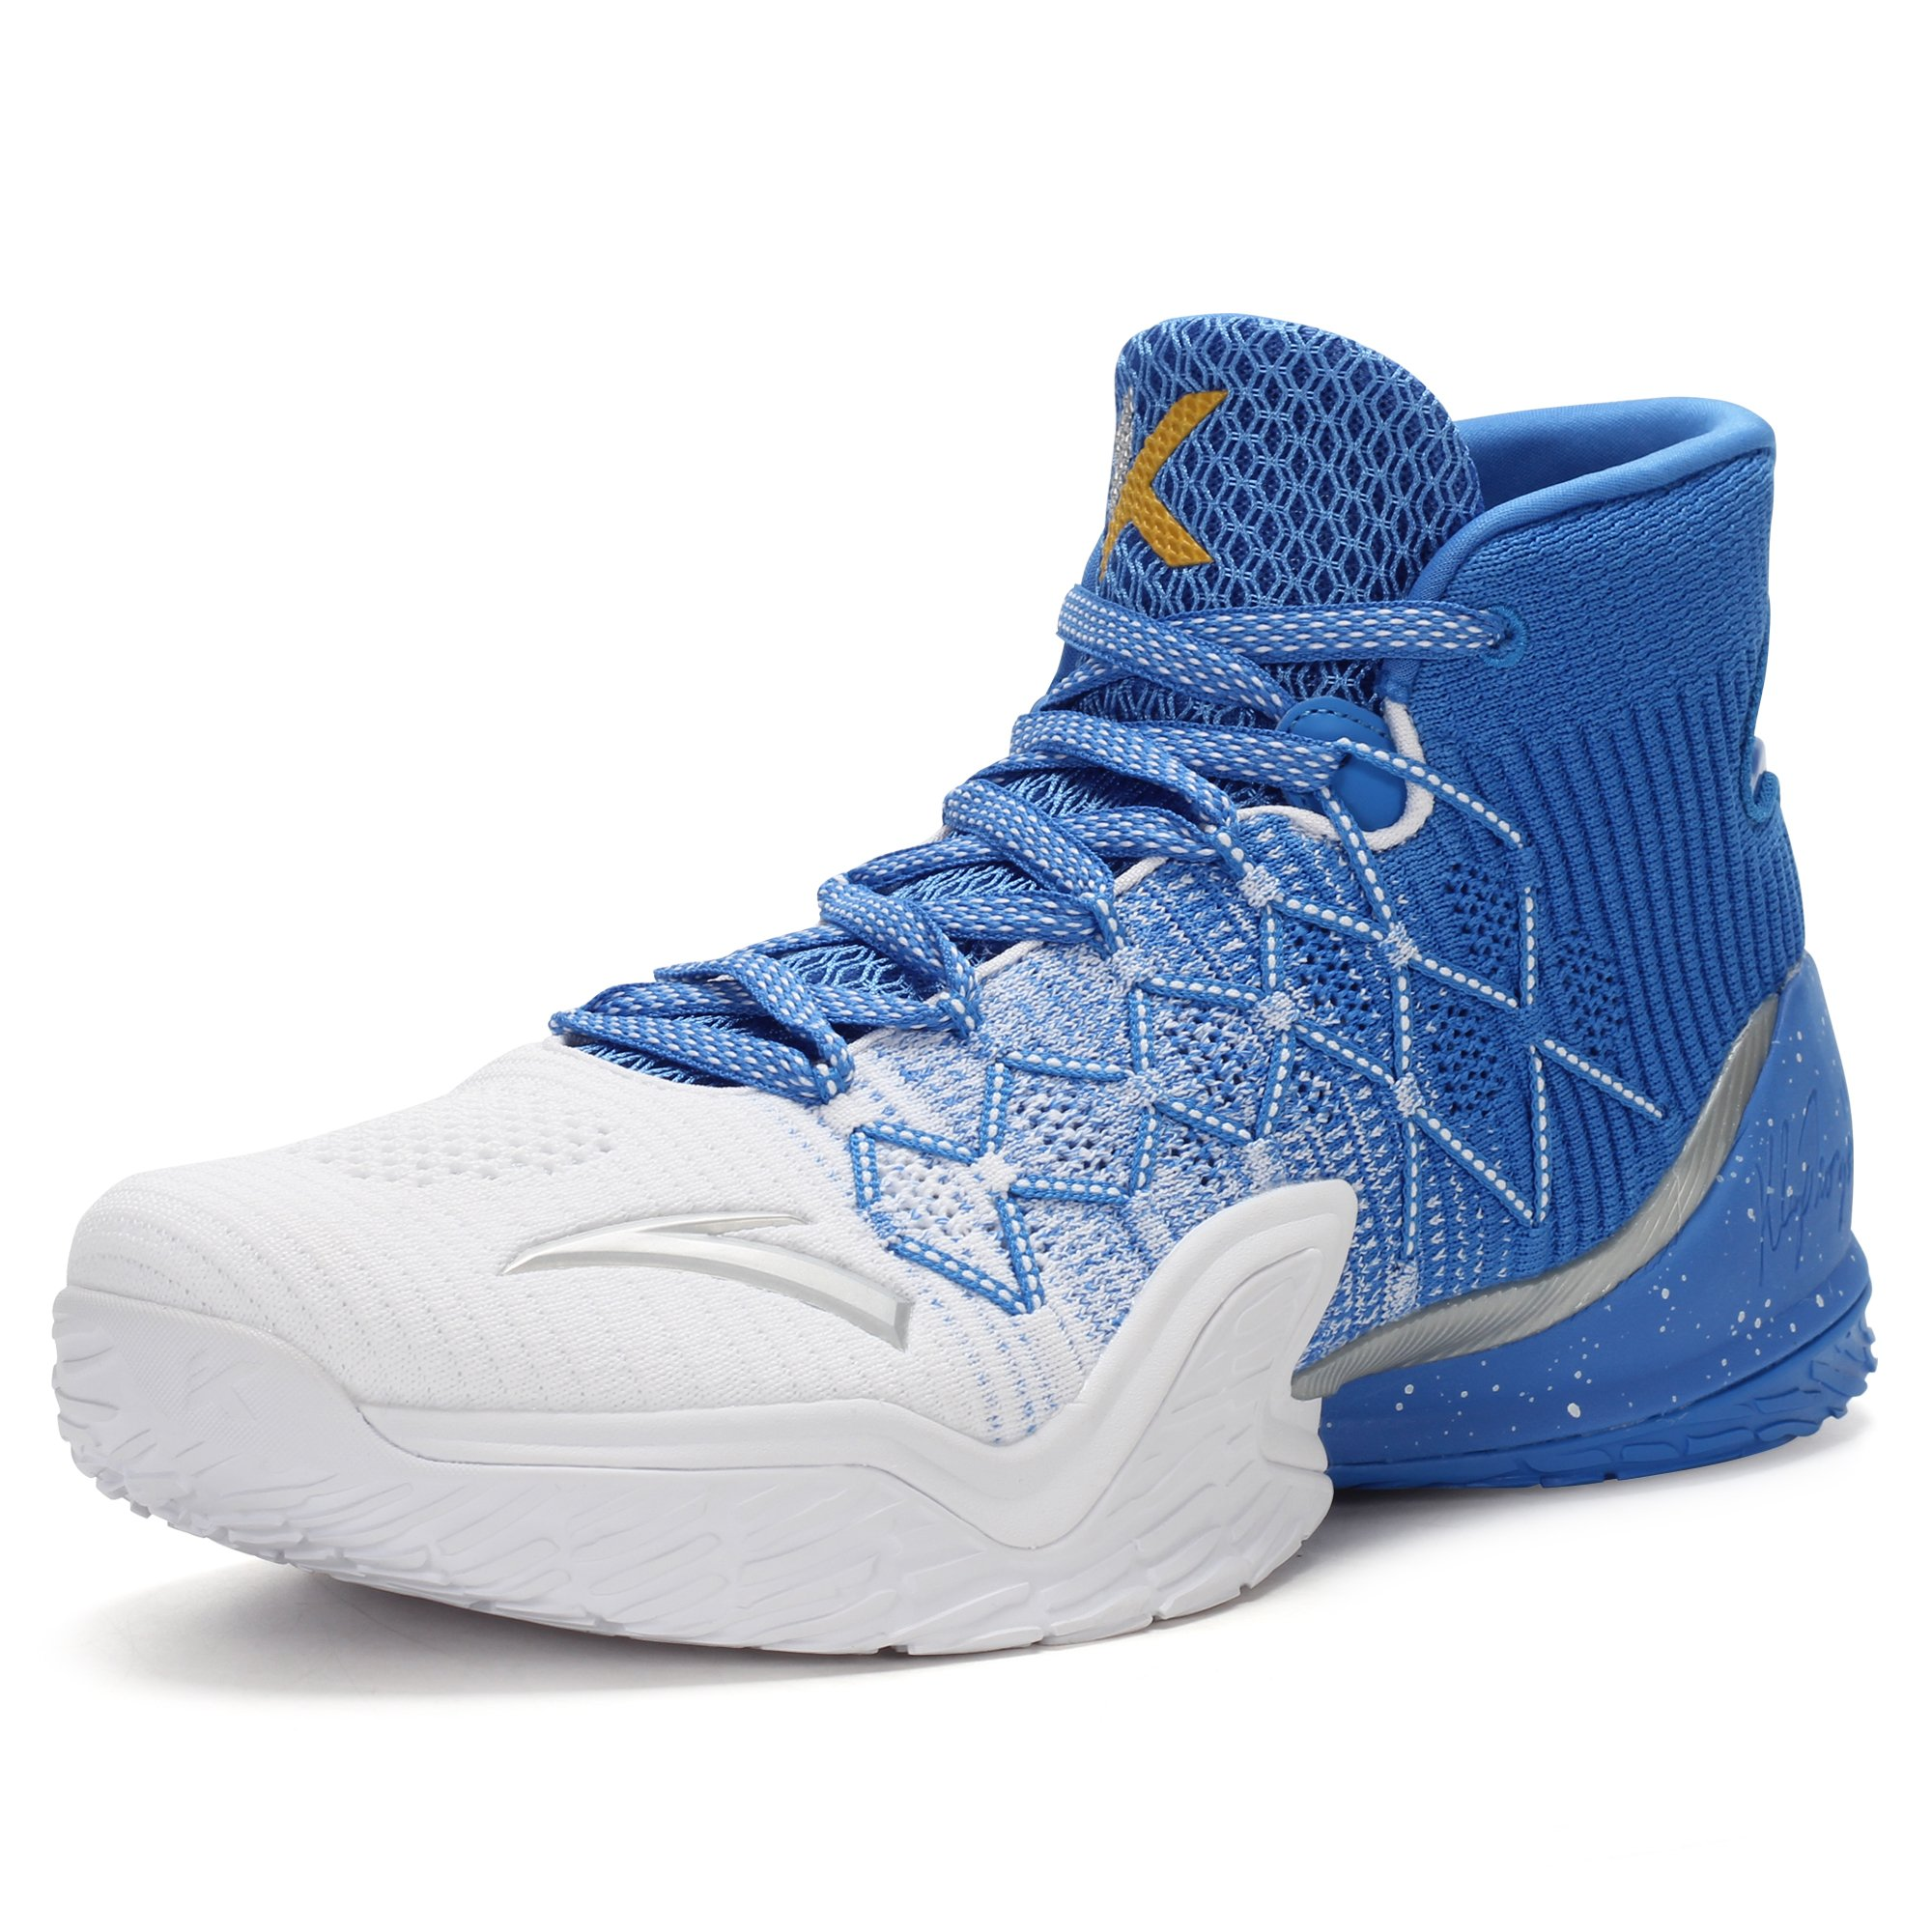 7819741452e Galleon - ANTA Klay Thompson KT3 Playoffs High Mens Basketball Shoes